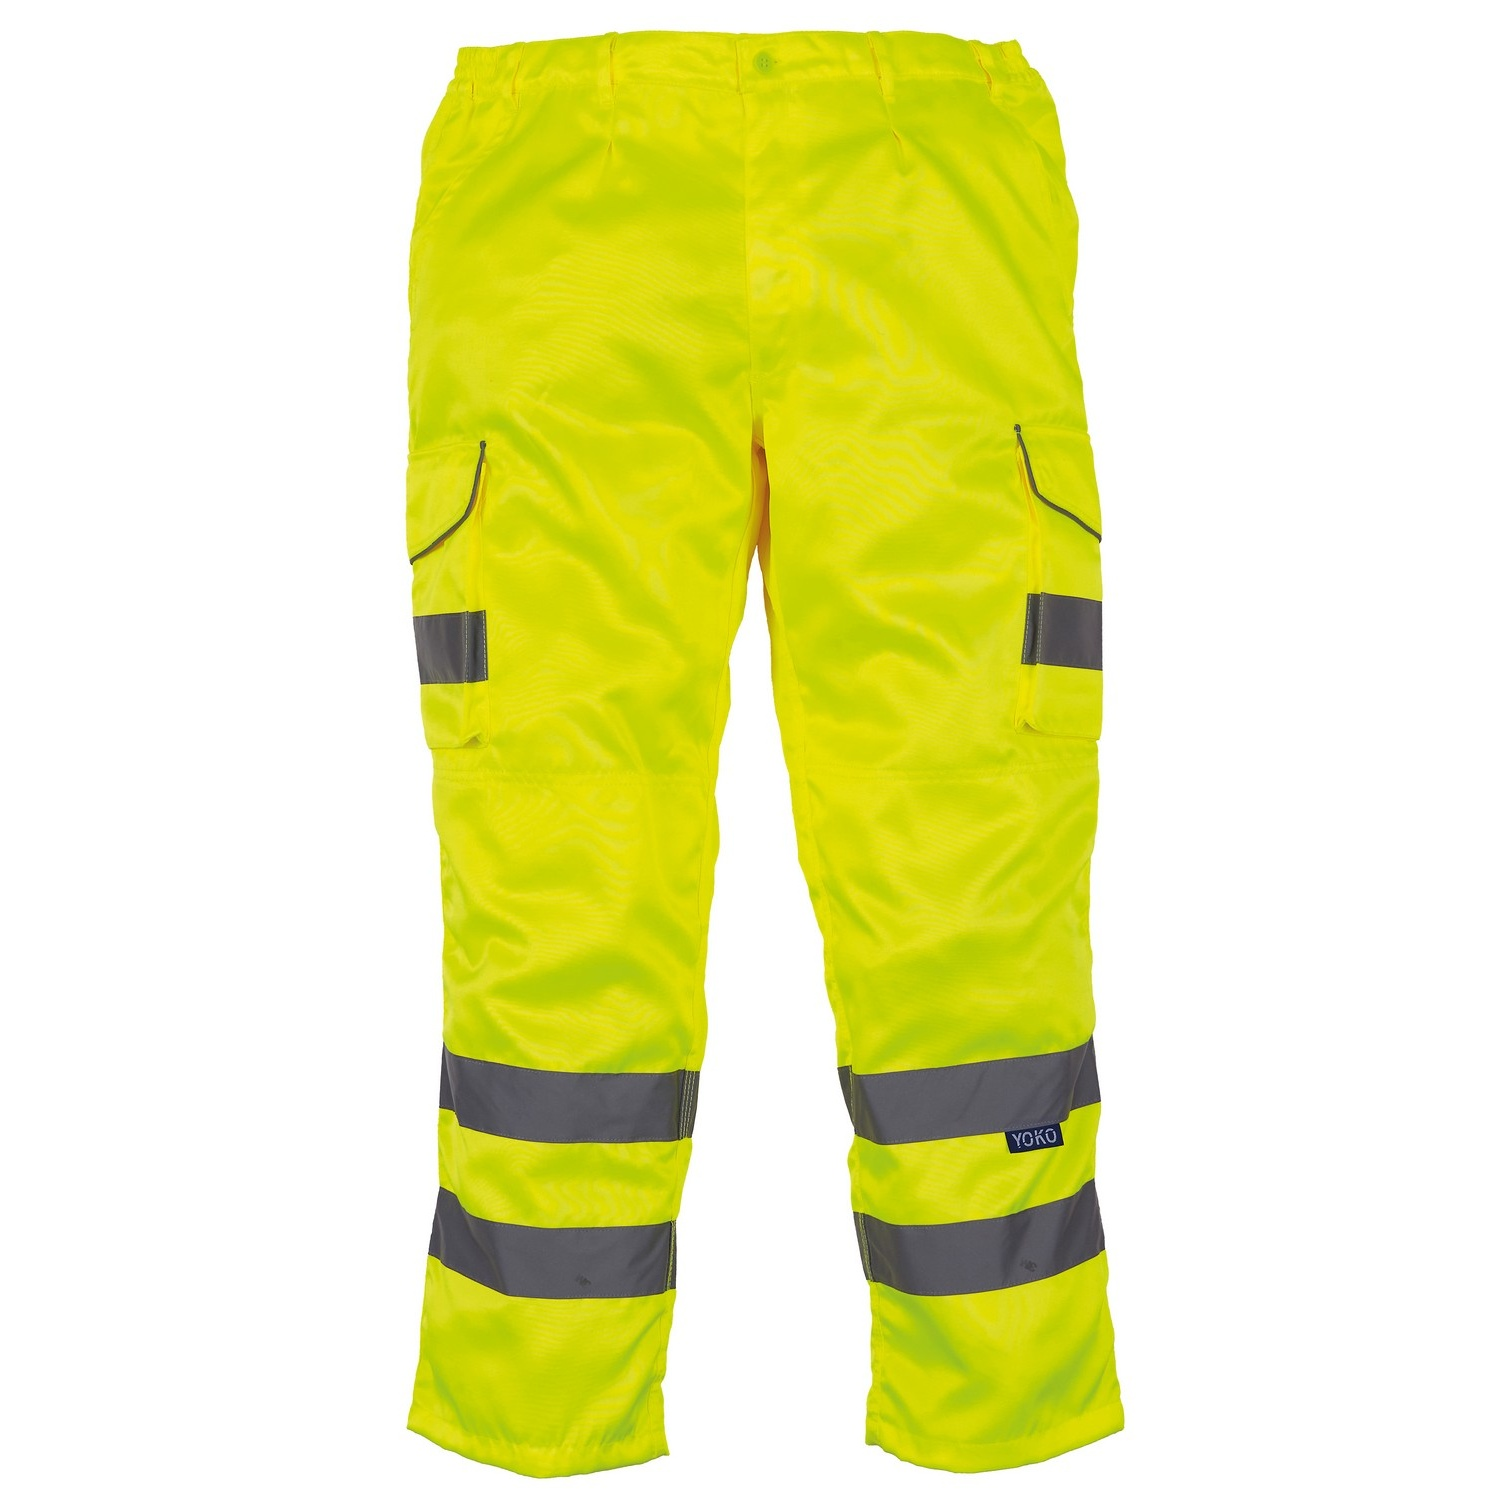 Yoko Mens Hi Vis Polycotton Cargo Trousers With Knee Pad Pockets (Pack of 2) (42R) (Yellow)